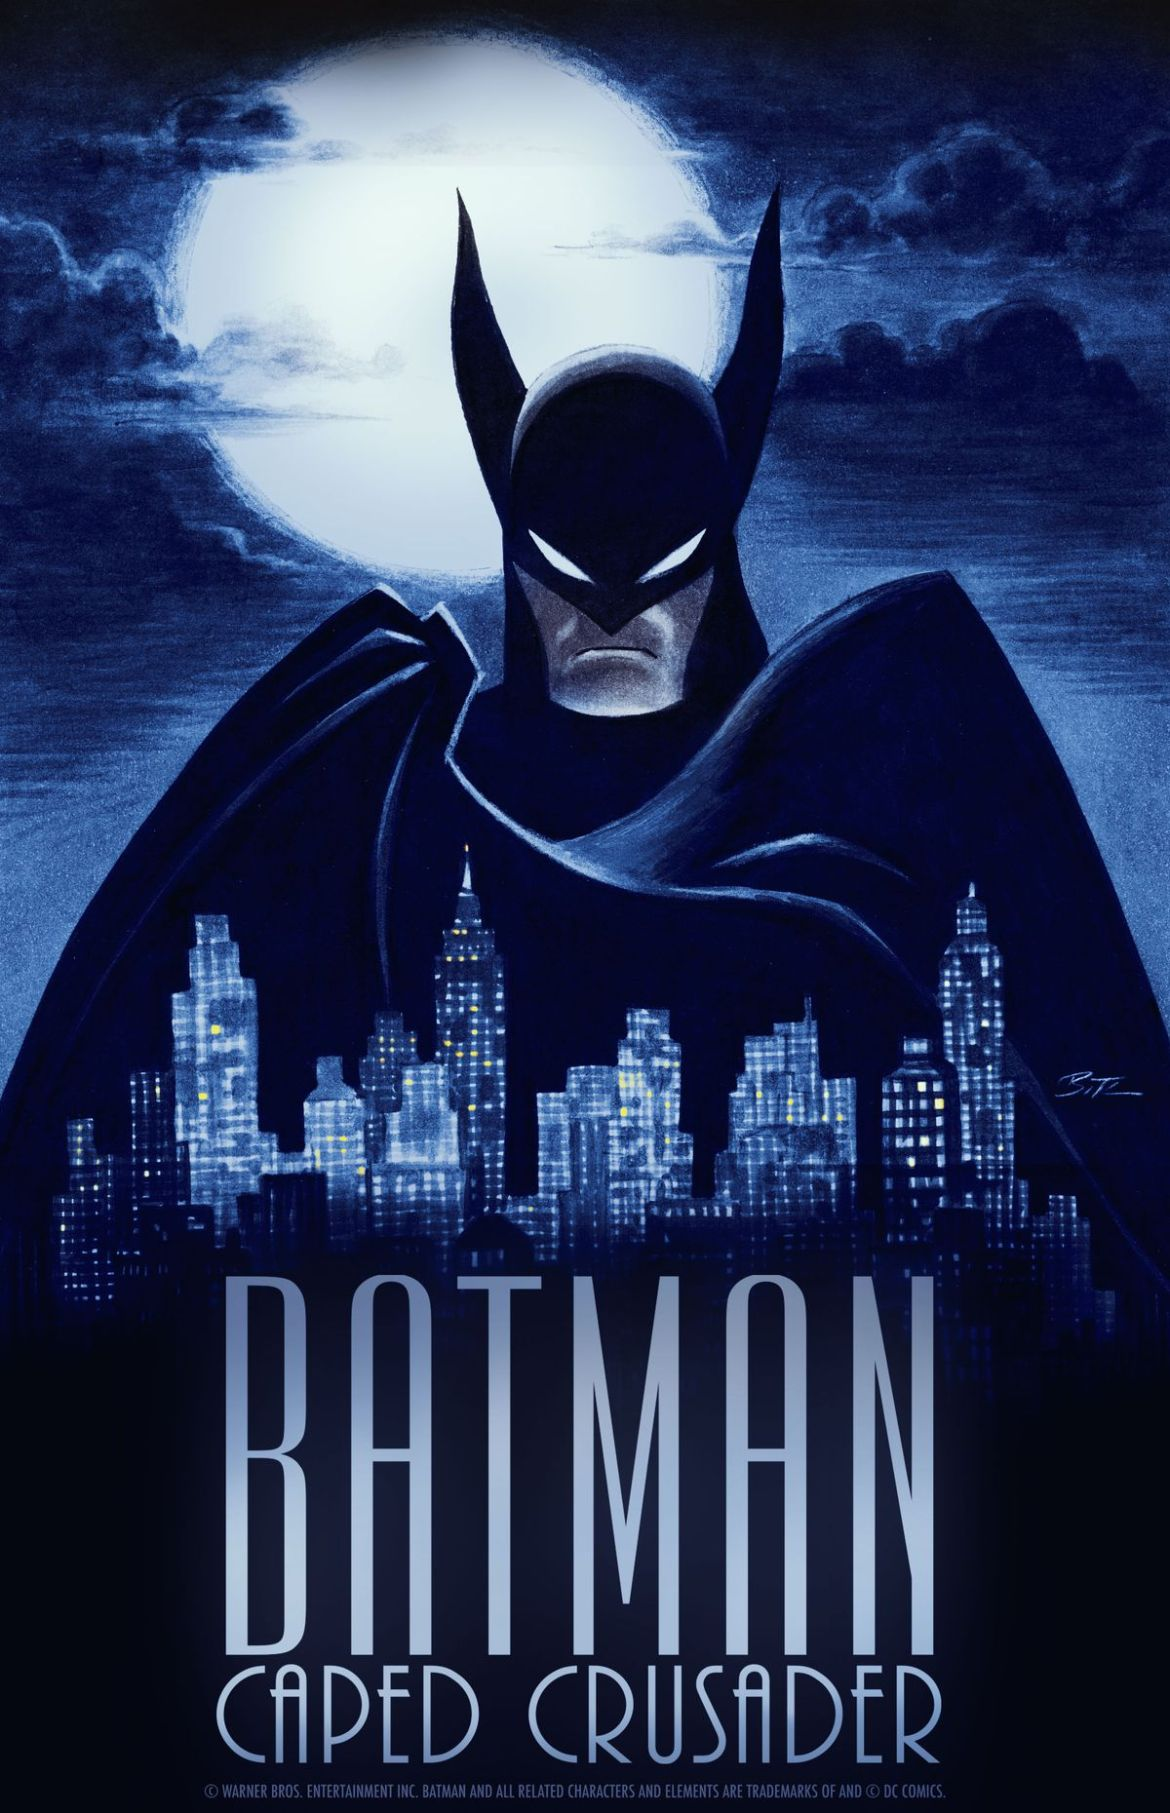 artwork for Batman: Caped Crusader, with a Batman with very tall, pointy ears looming over Gotham City at night with a giant moon behind him